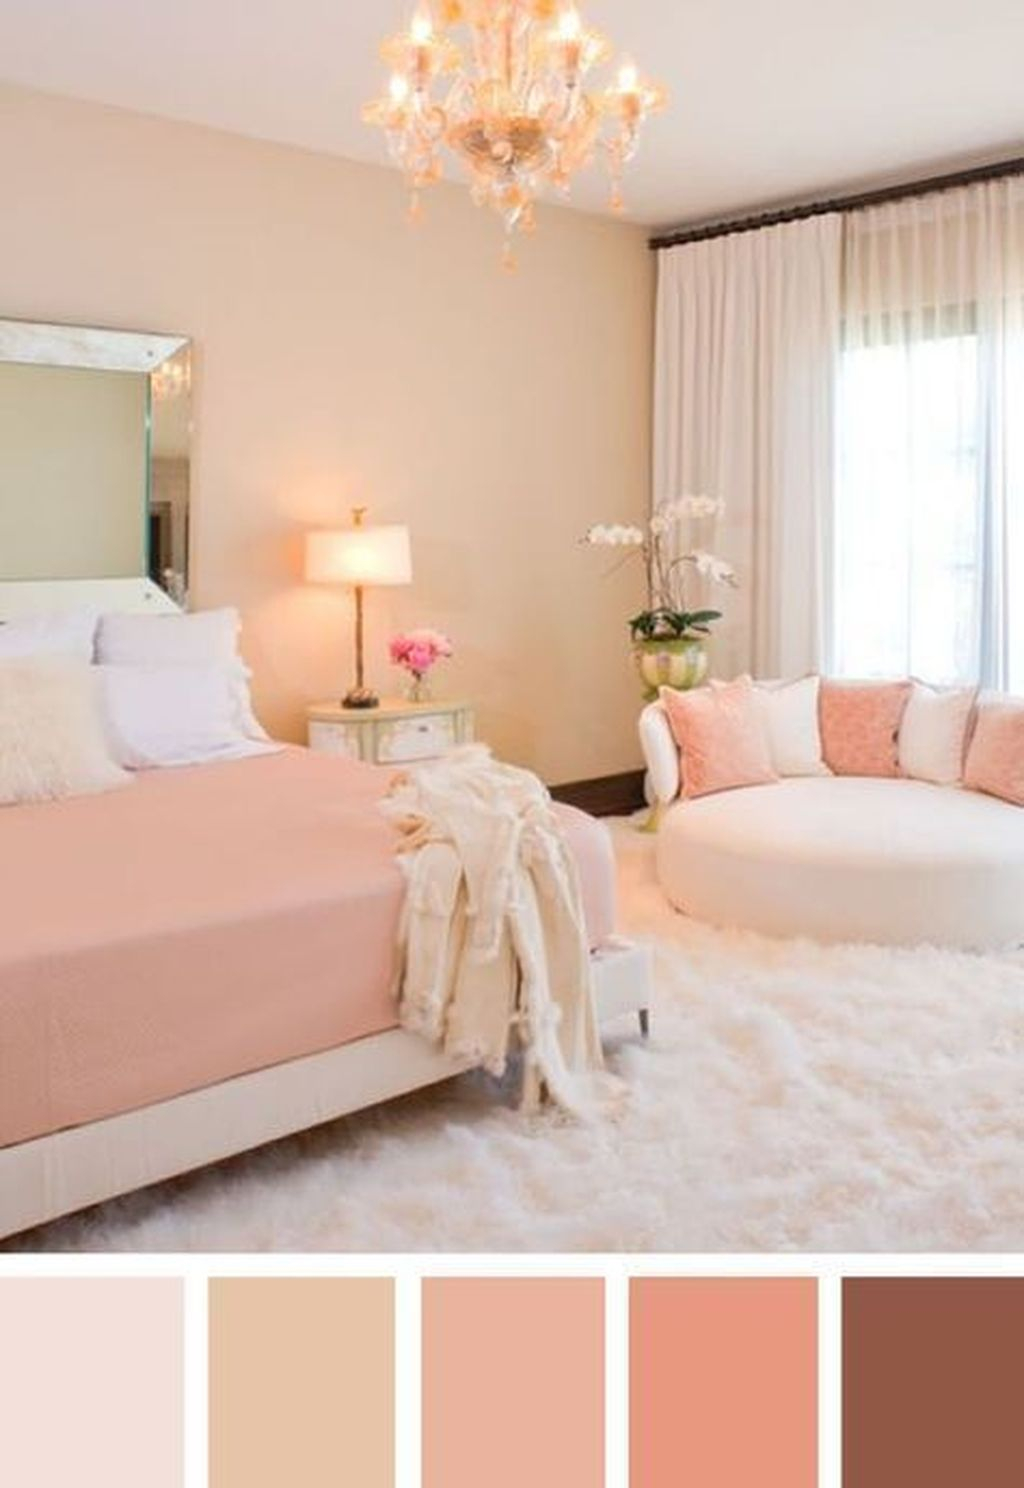 Marvelous Bedroom Color Design Ideas That Will Inspire You 23